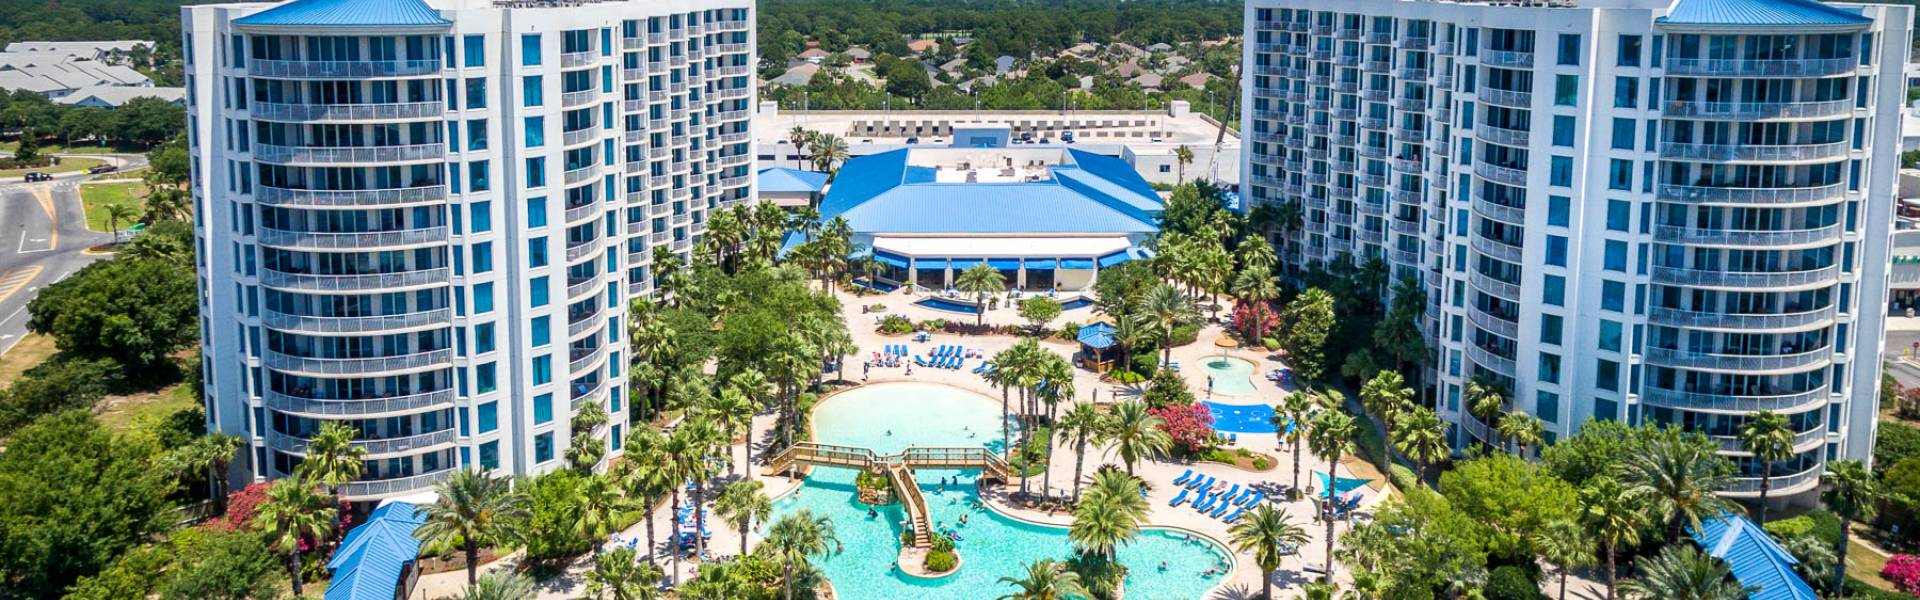 Compass Resorts The Palms of Destin Resort & Conference Center